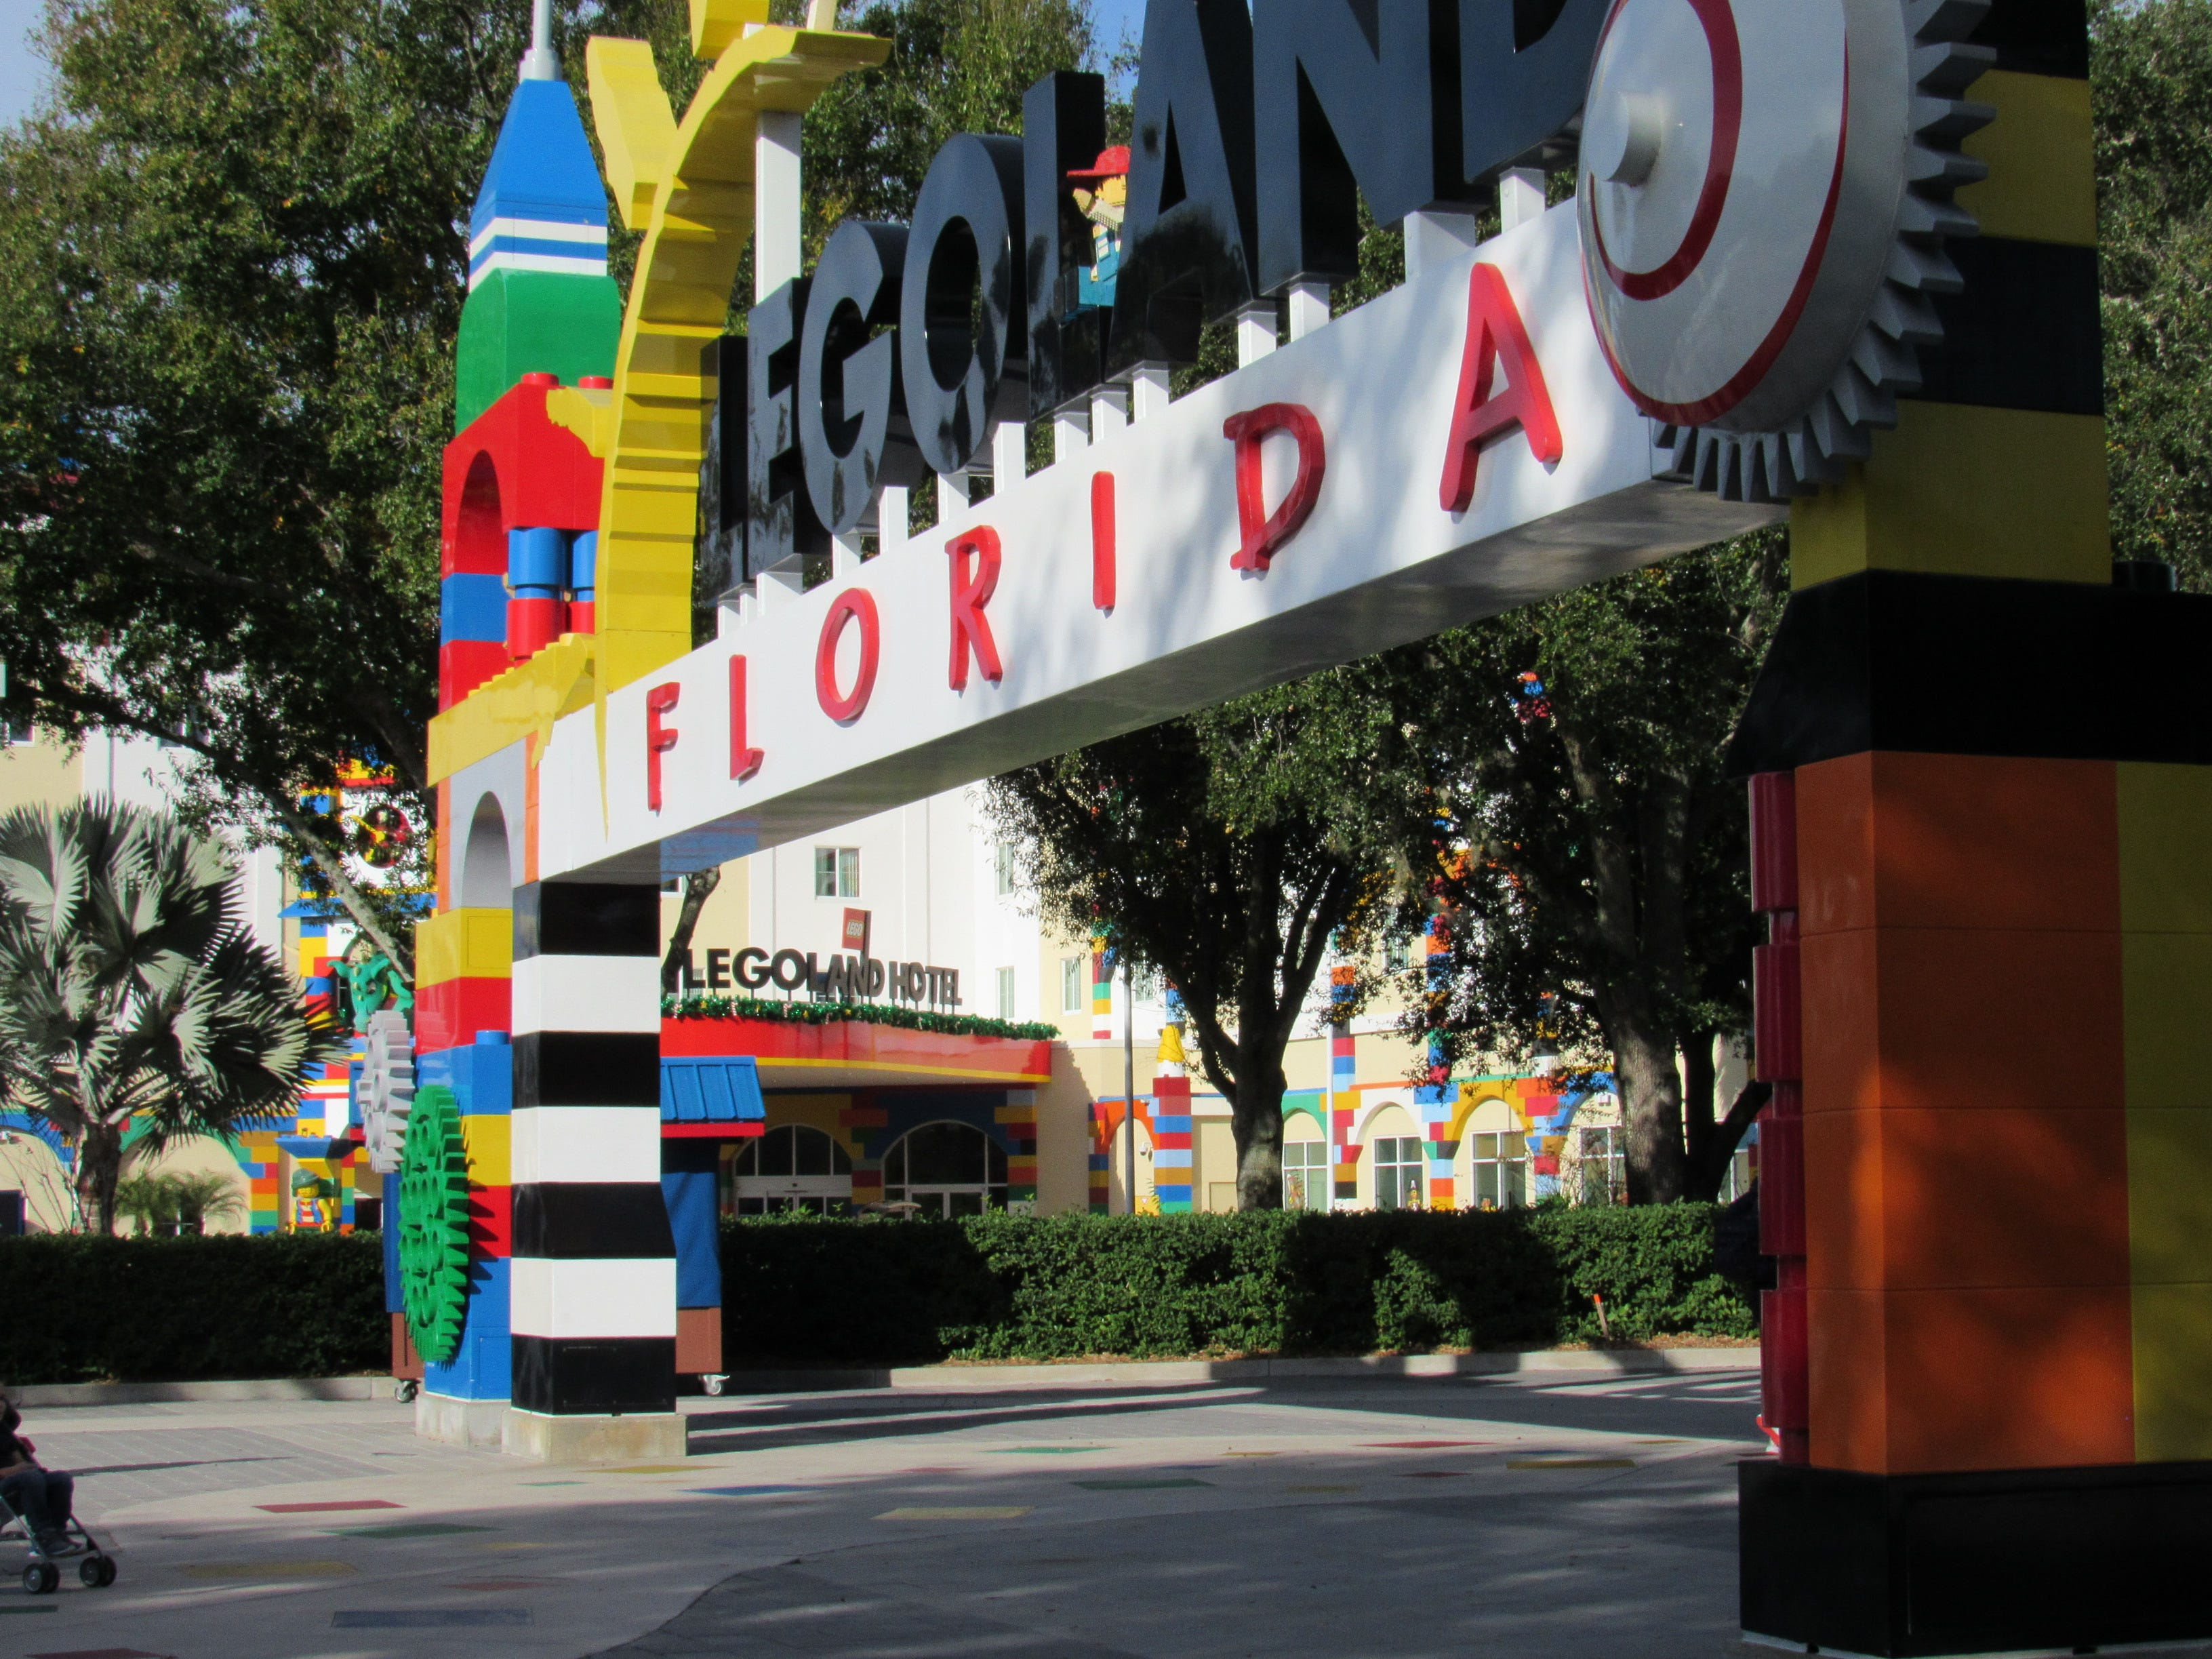 The Legoland Hotel at Legoland Florida is just steps away from the park entrance, making it a no-brainer lodging choice.